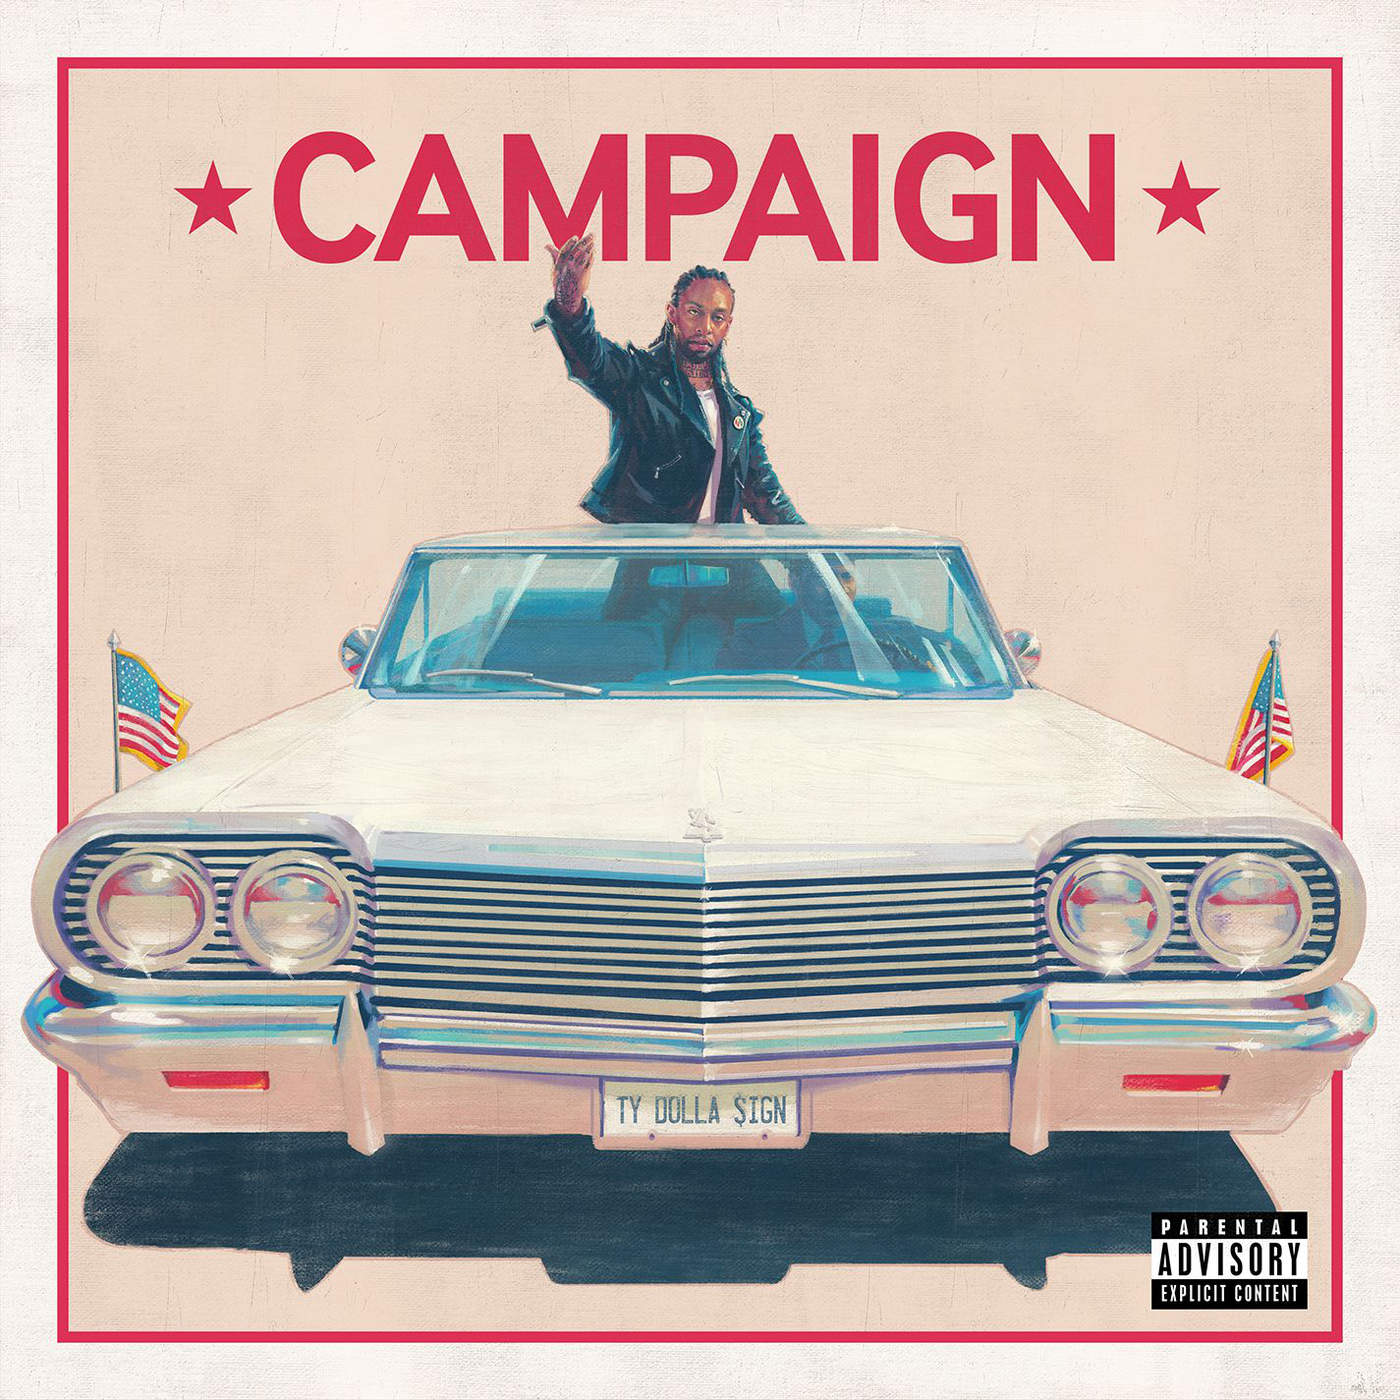 Headspinning Innovation For Simple Sublimation: Ty Dolla $ign's Campaign